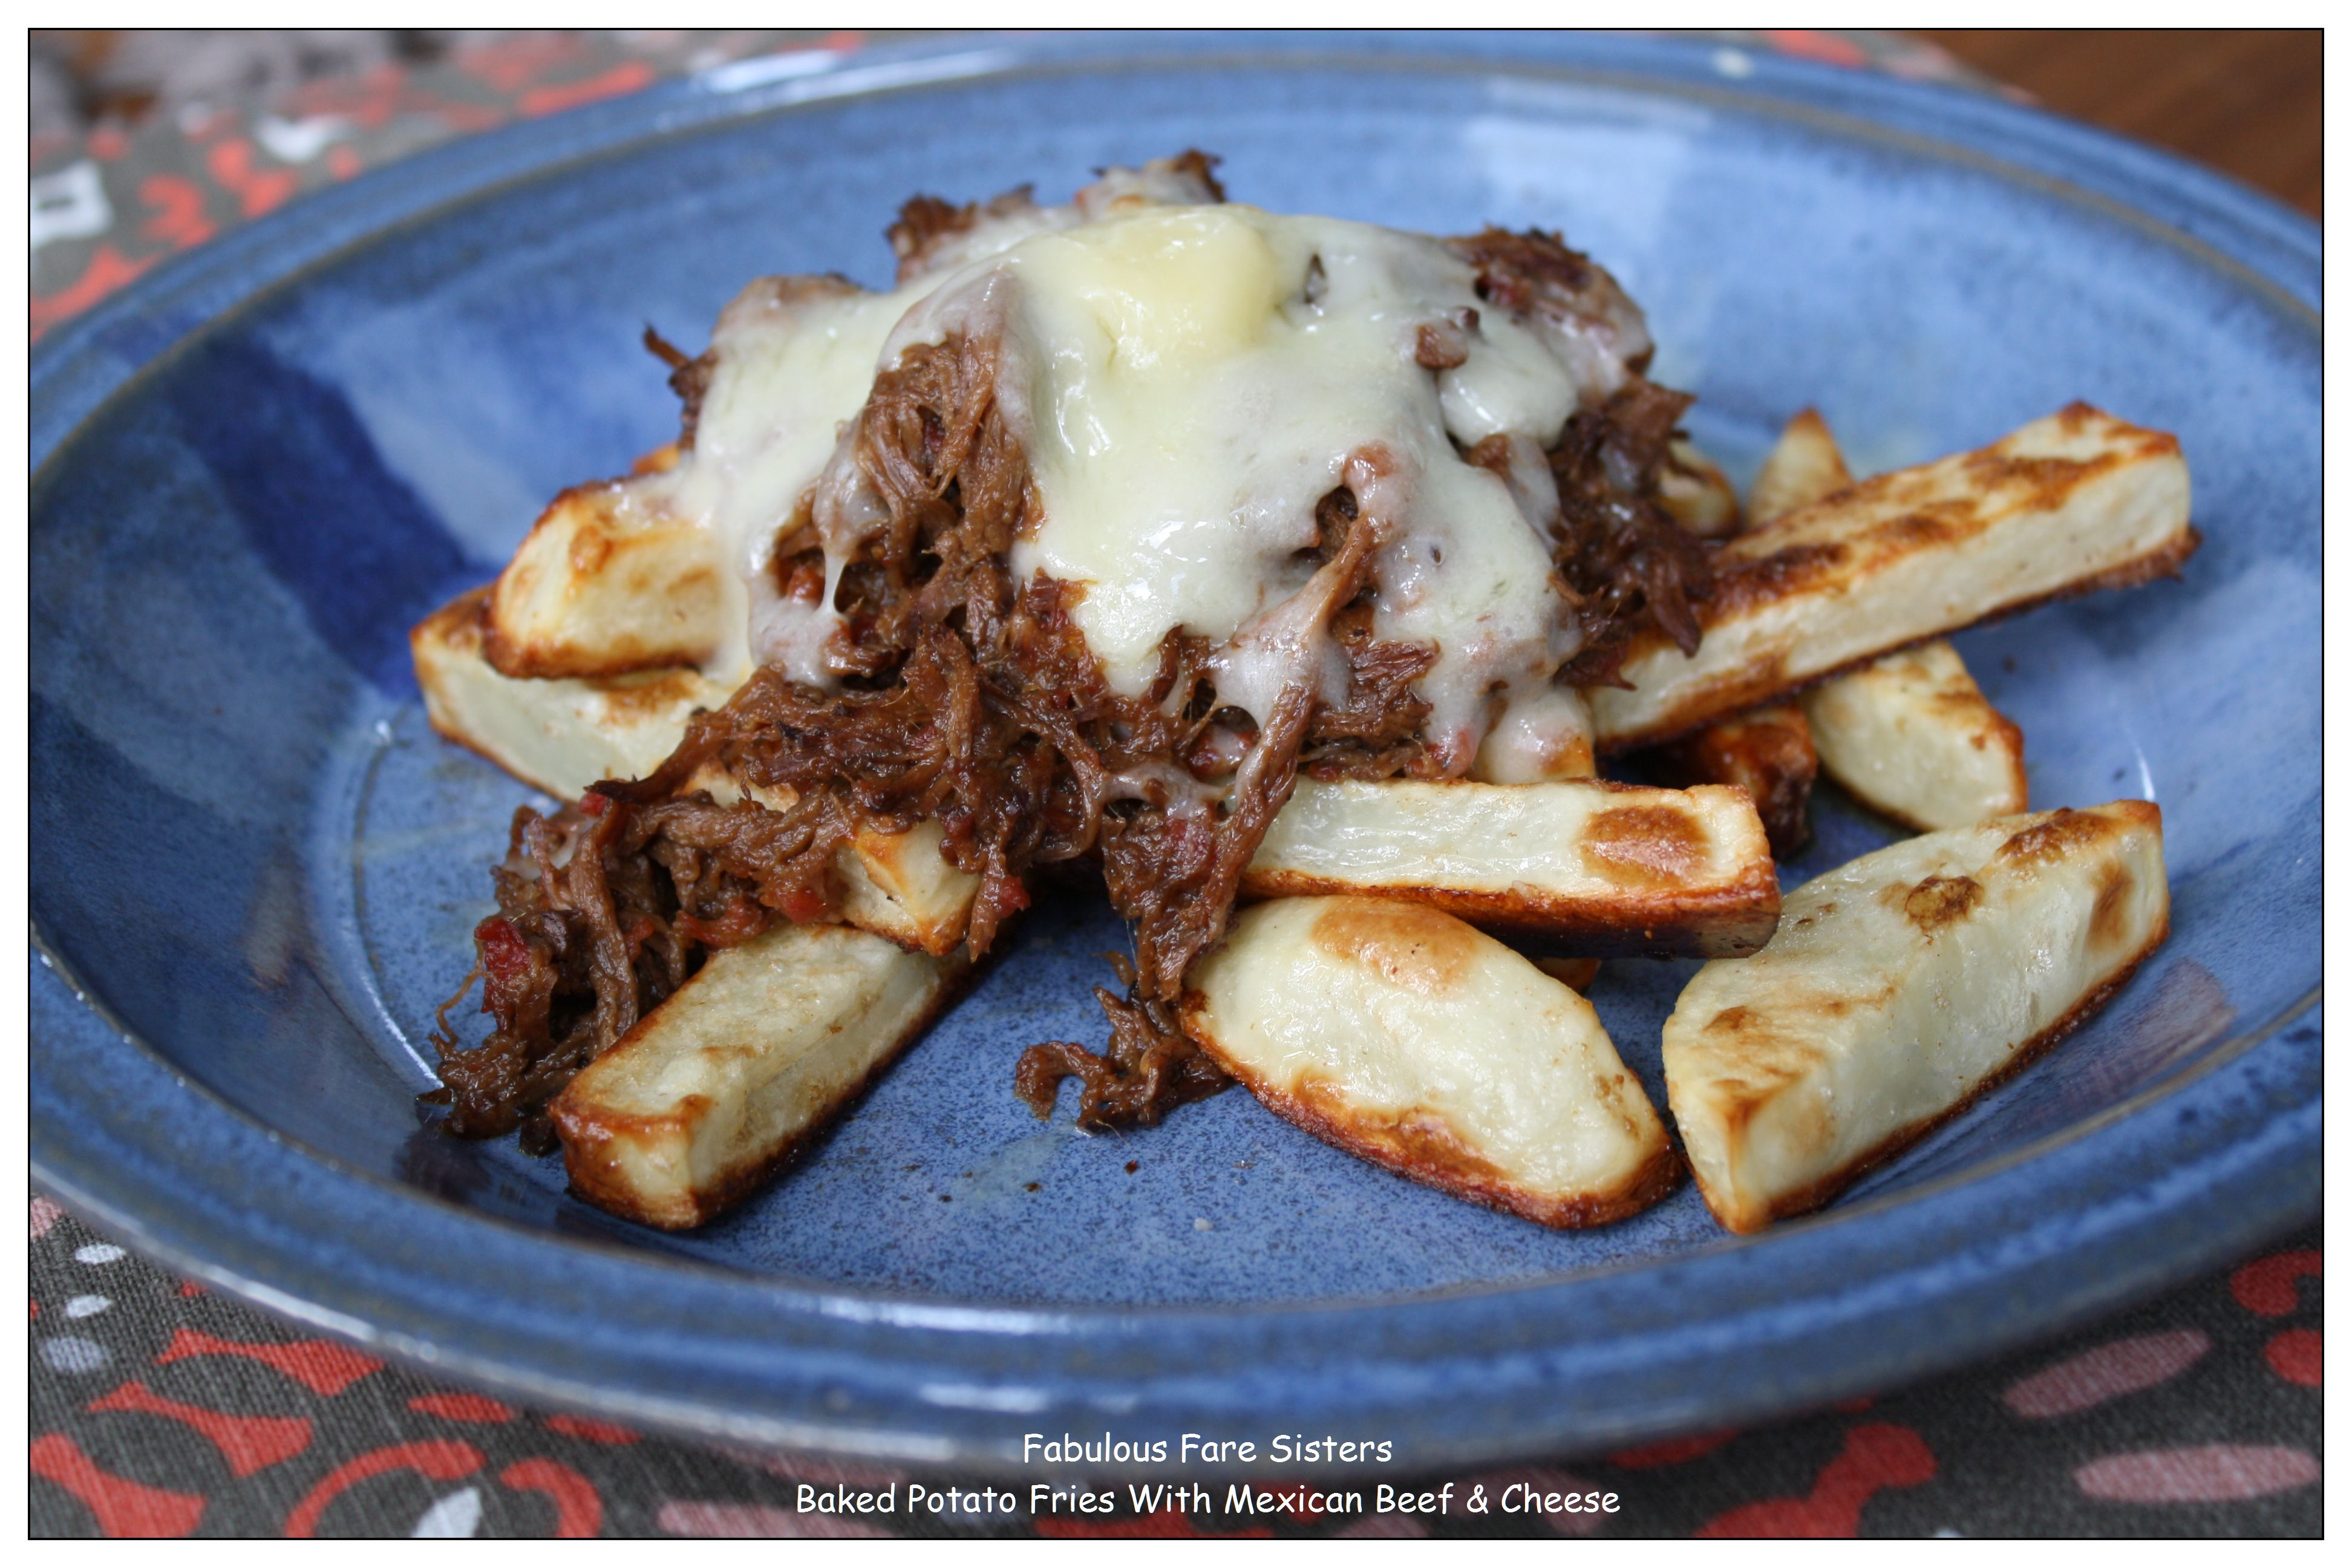 Baked Potato Fries With Mexican Beef & Cheese